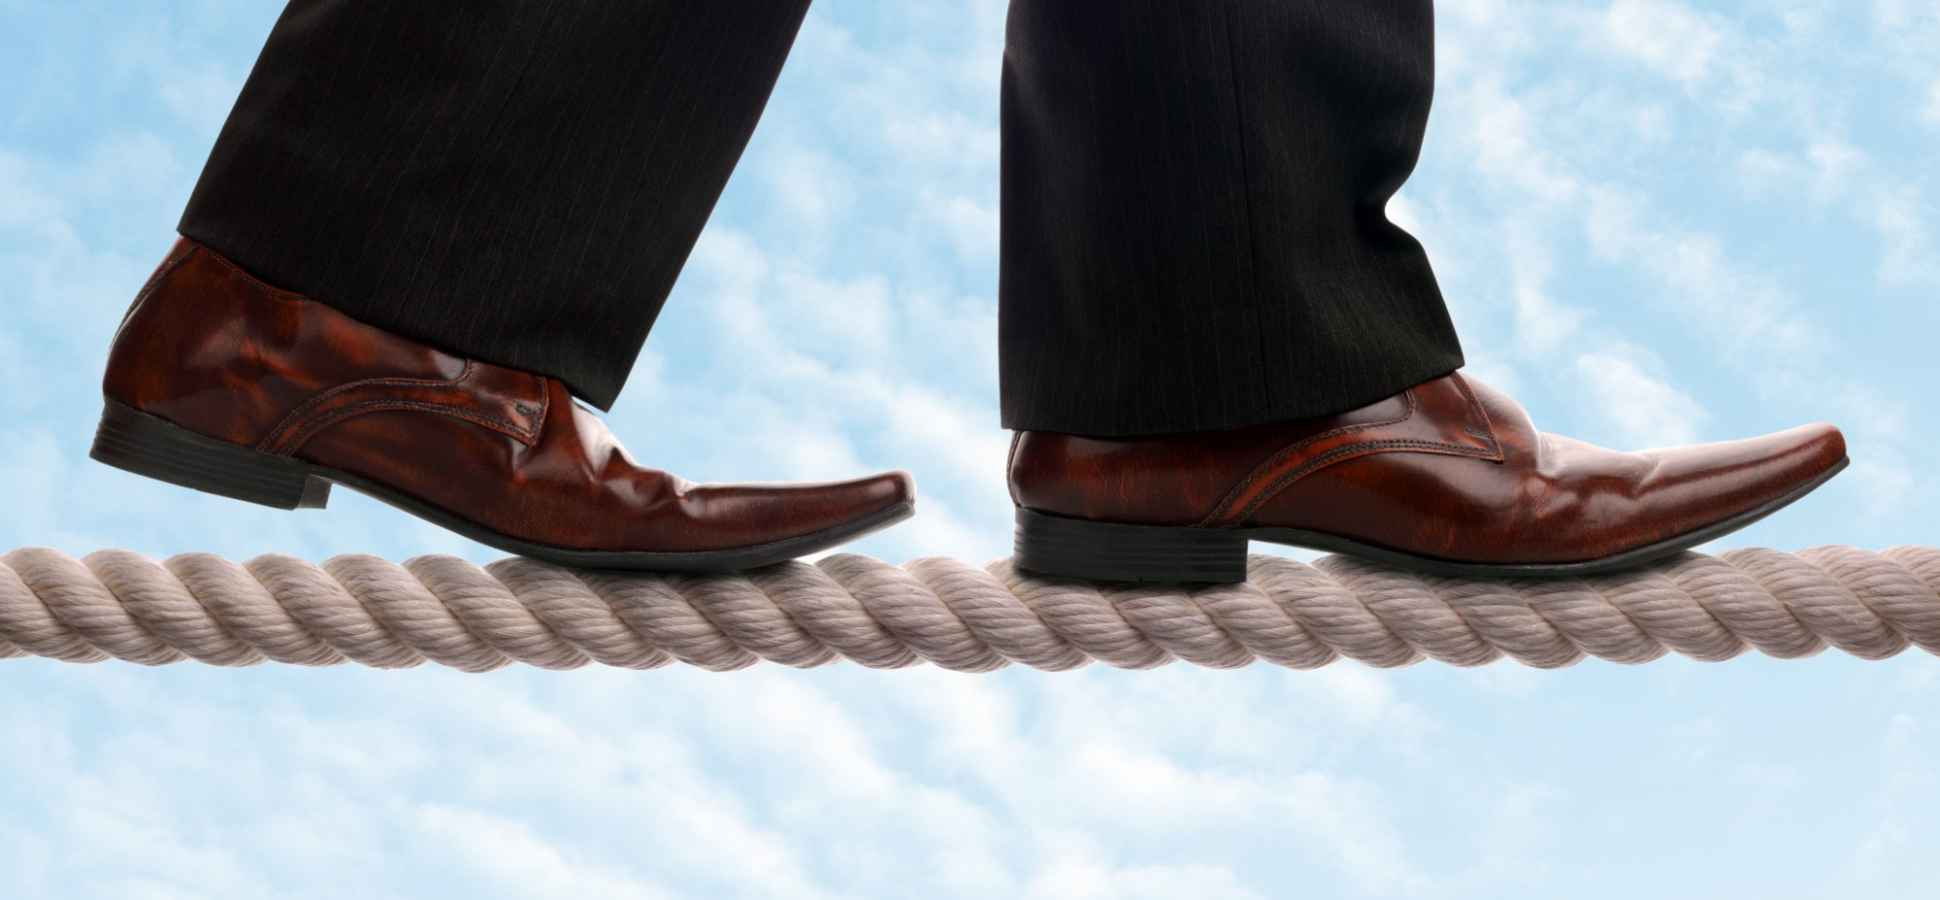 3 Top Traits of Effective Agile Leaders